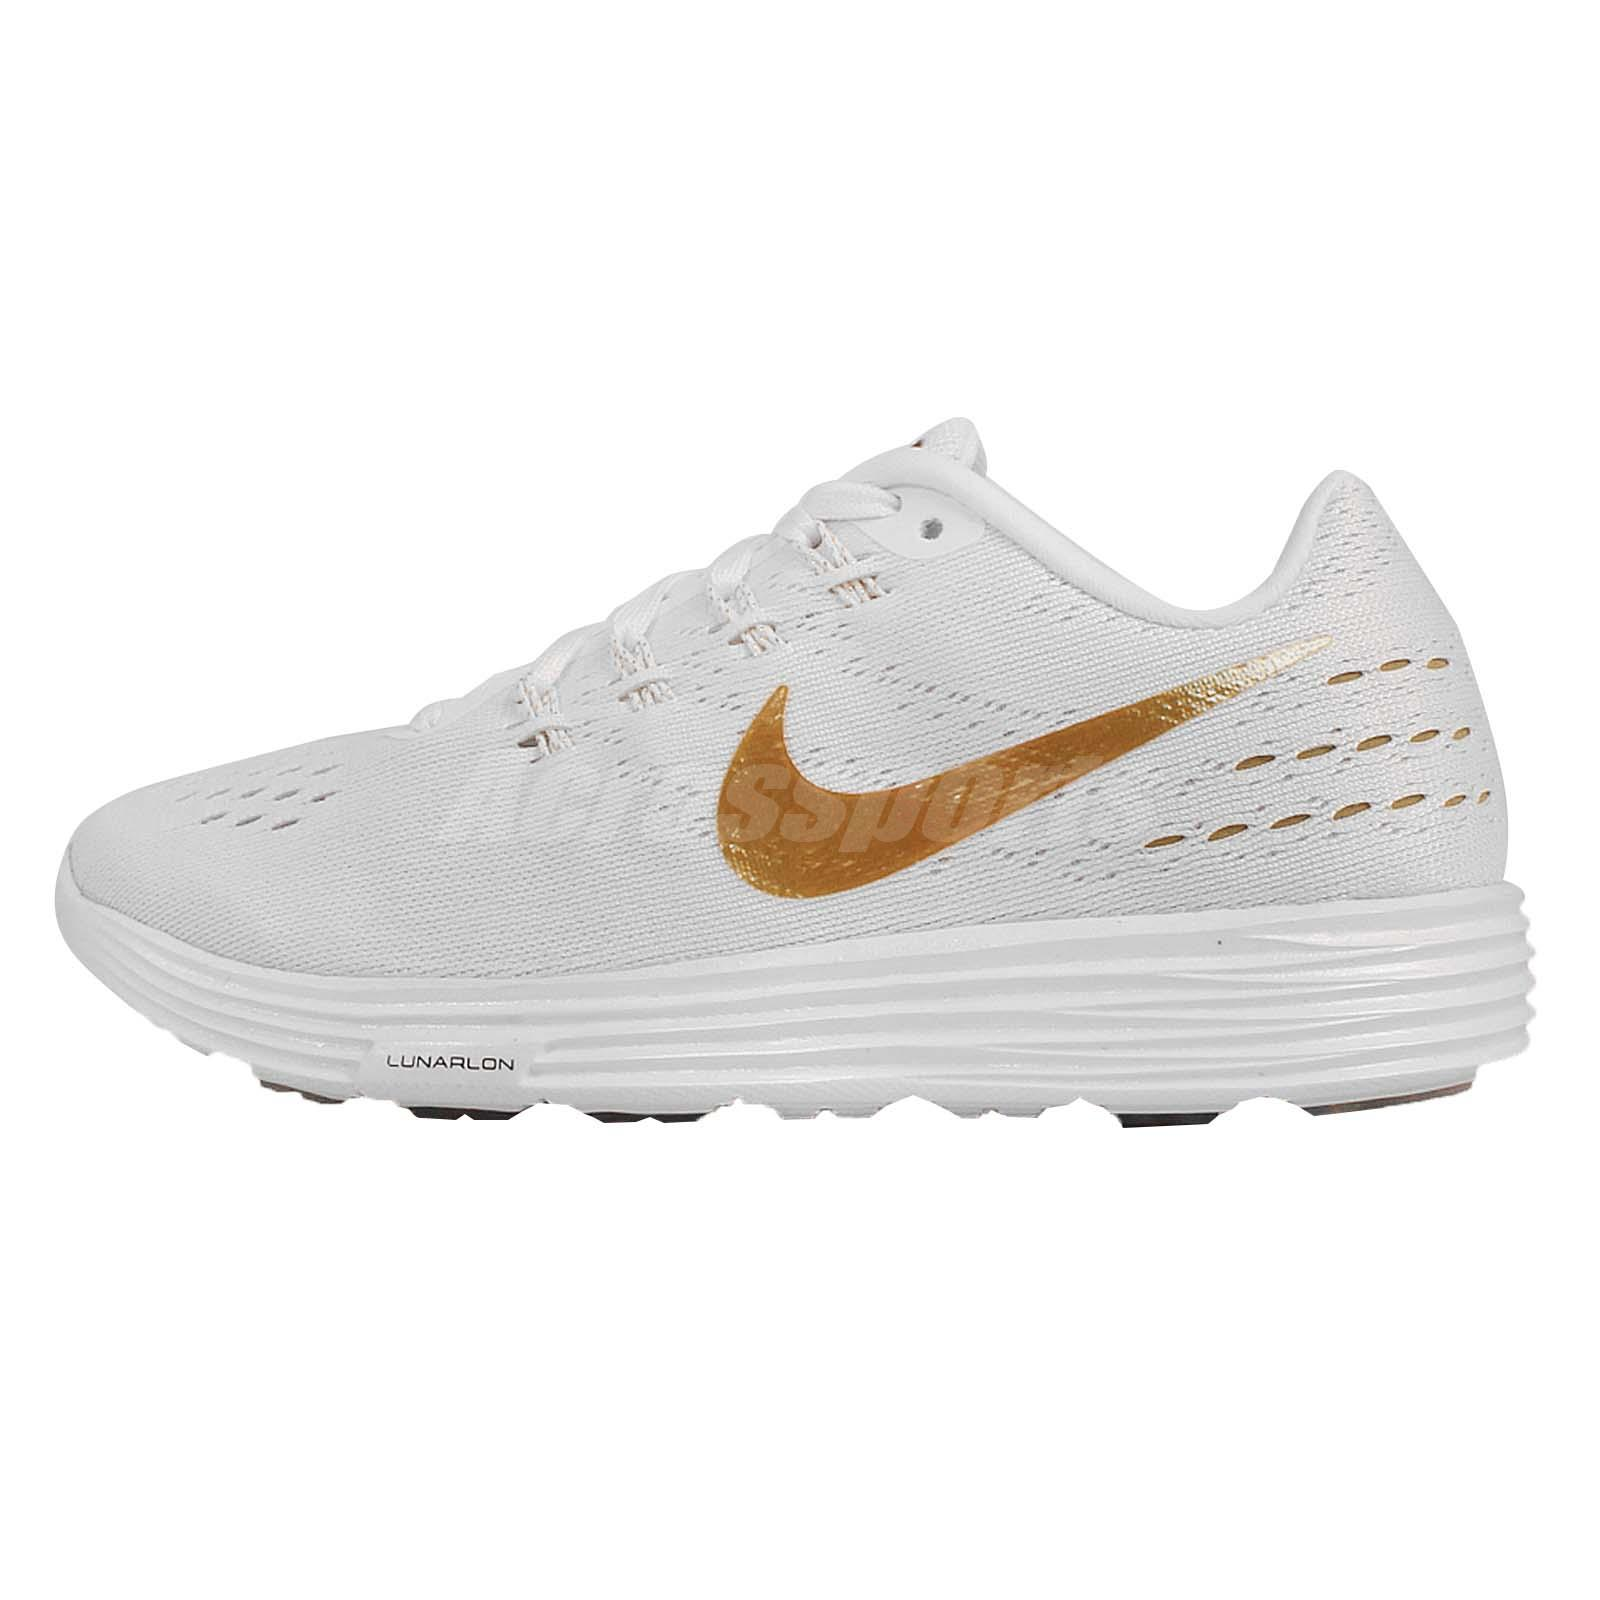 new concept 0998d 650d3 ... Wmns Nike Lunartempo 2 IWD II White Gold Womens Running Shoes  839420-108 ...